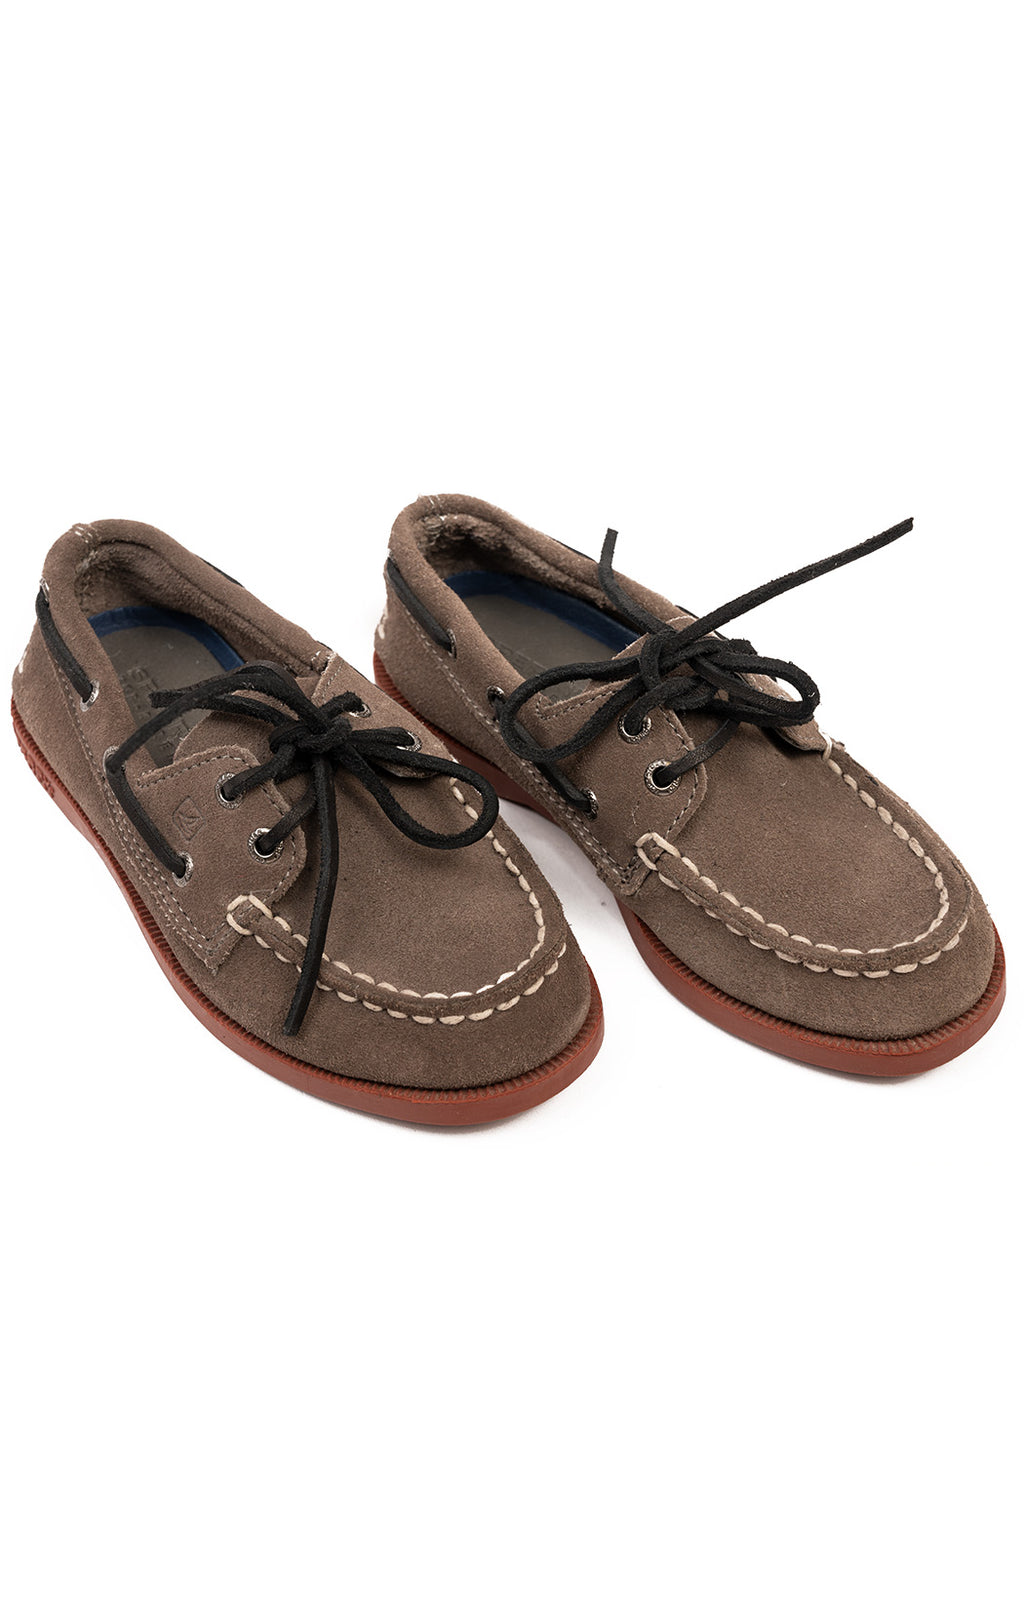 SPERRY Loafers Size: 8.5